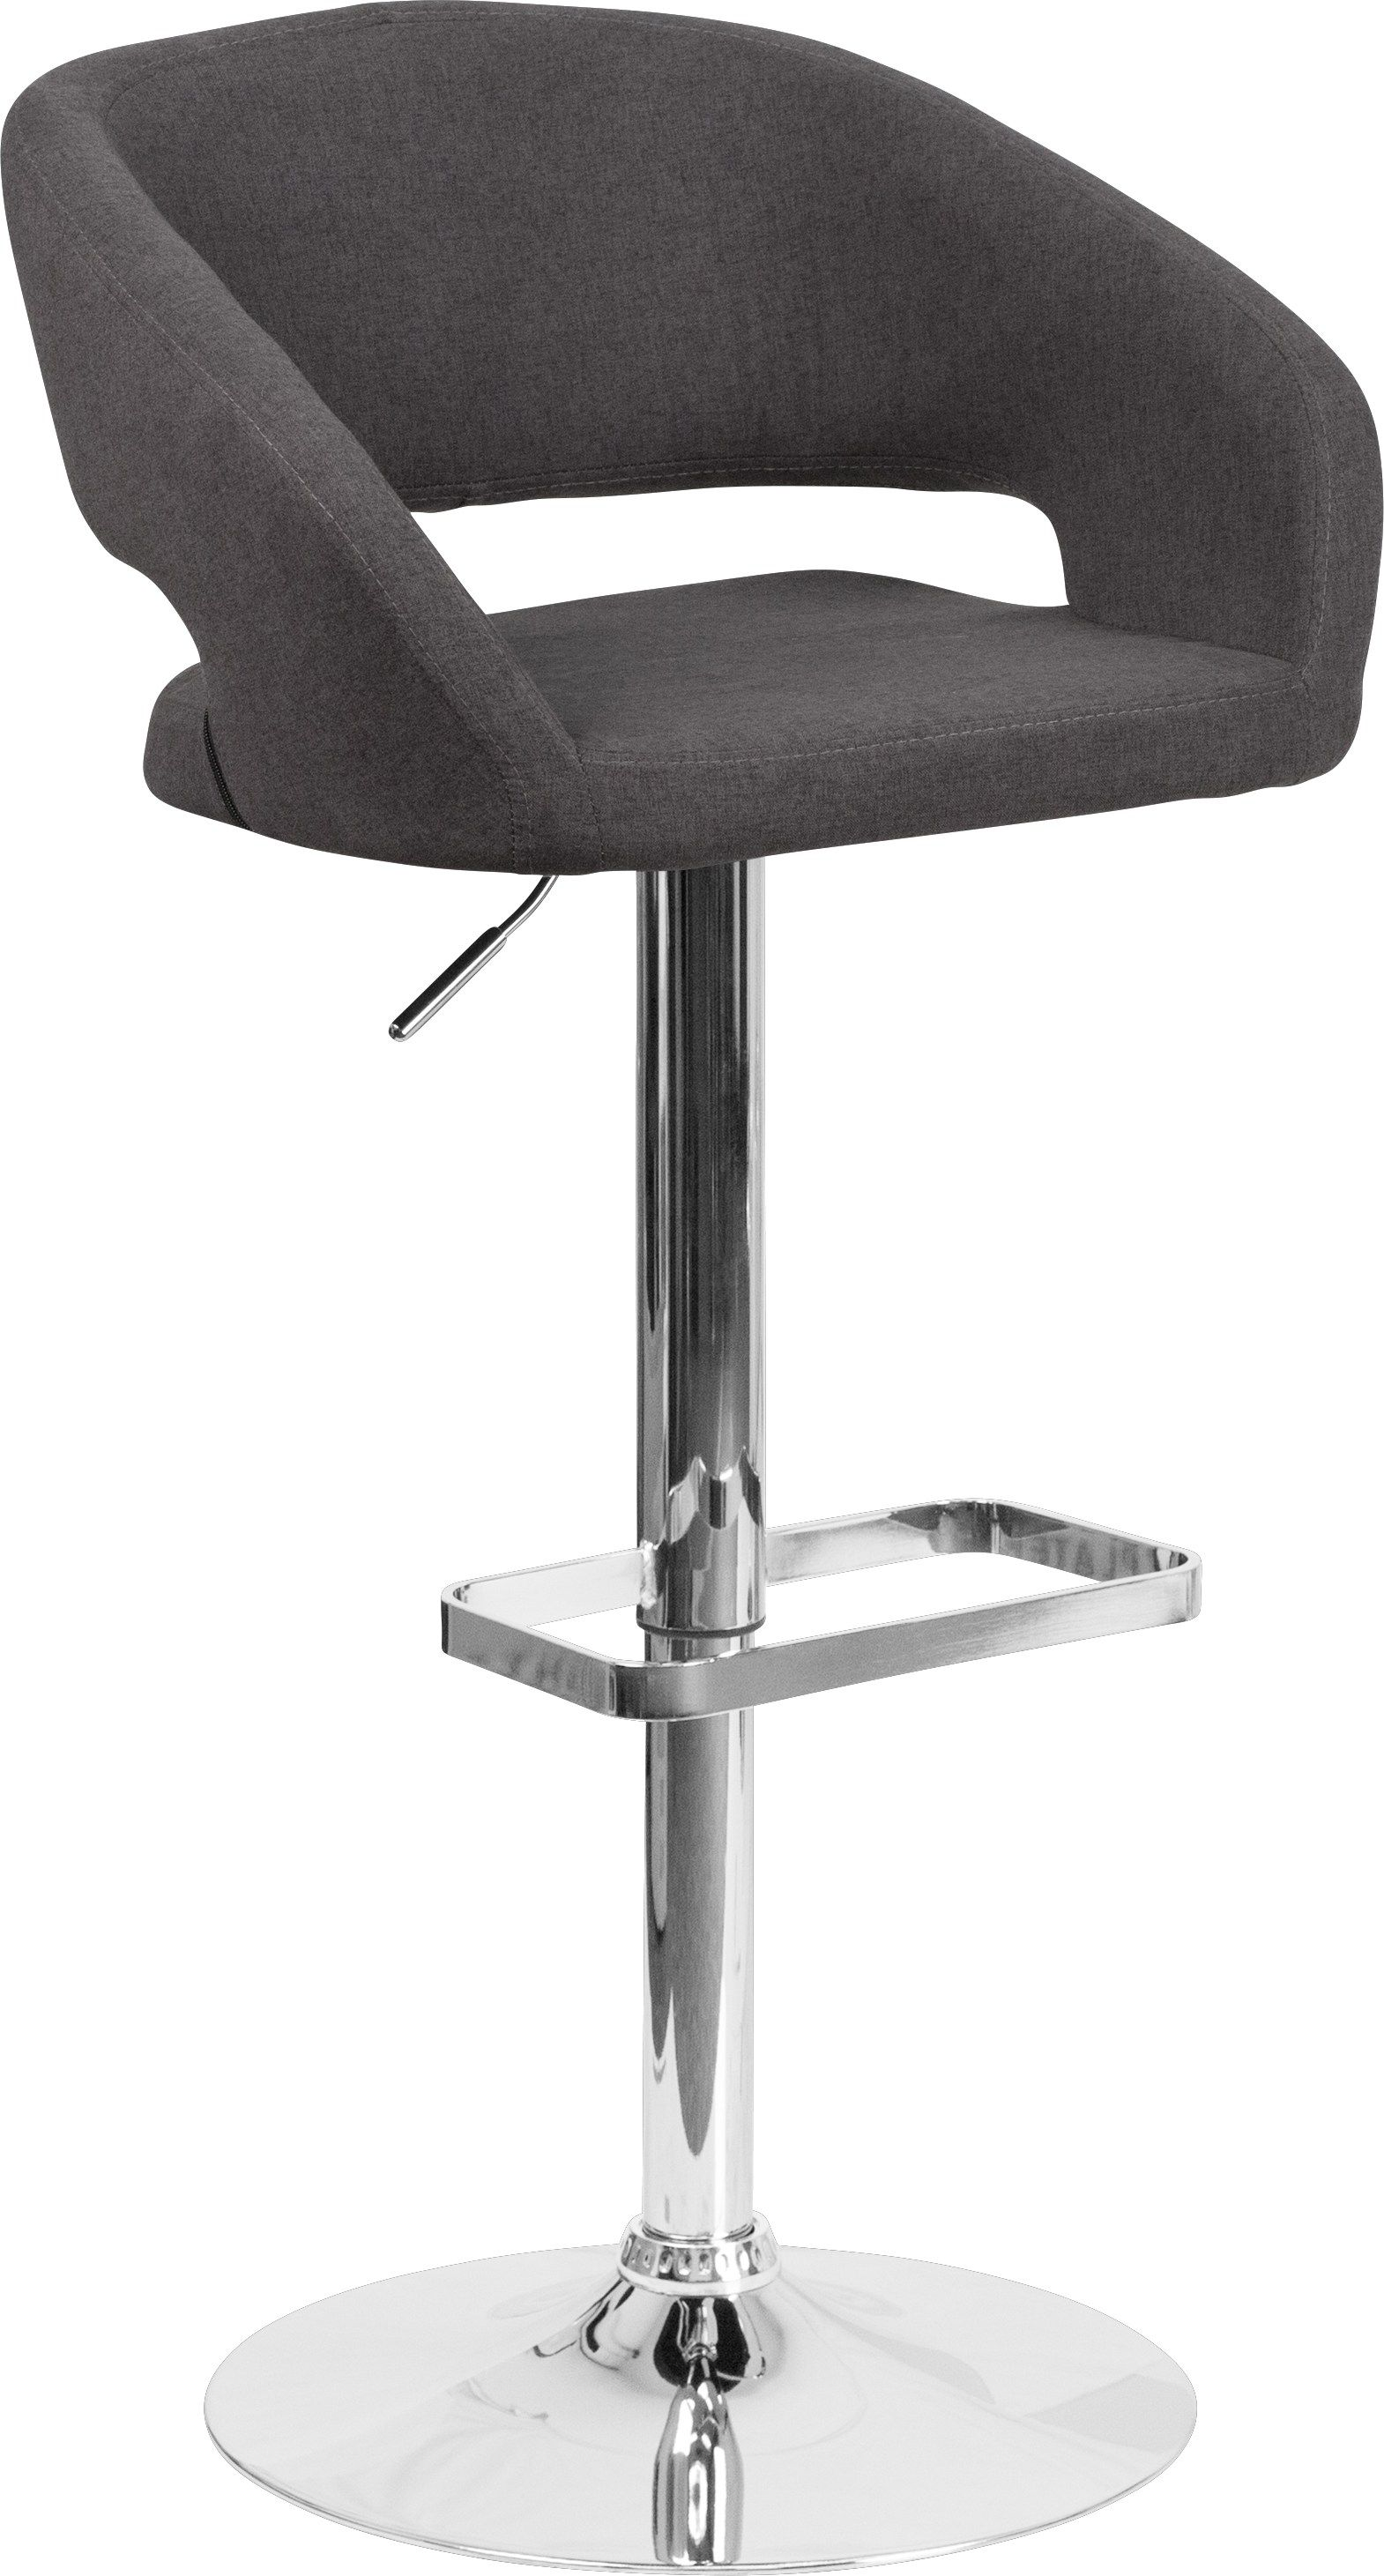 Enjoyable Corley Black Plush Adjustable Swivel Barstool Island Area Inzonedesignstudio Interior Chair Design Inzonedesignstudiocom